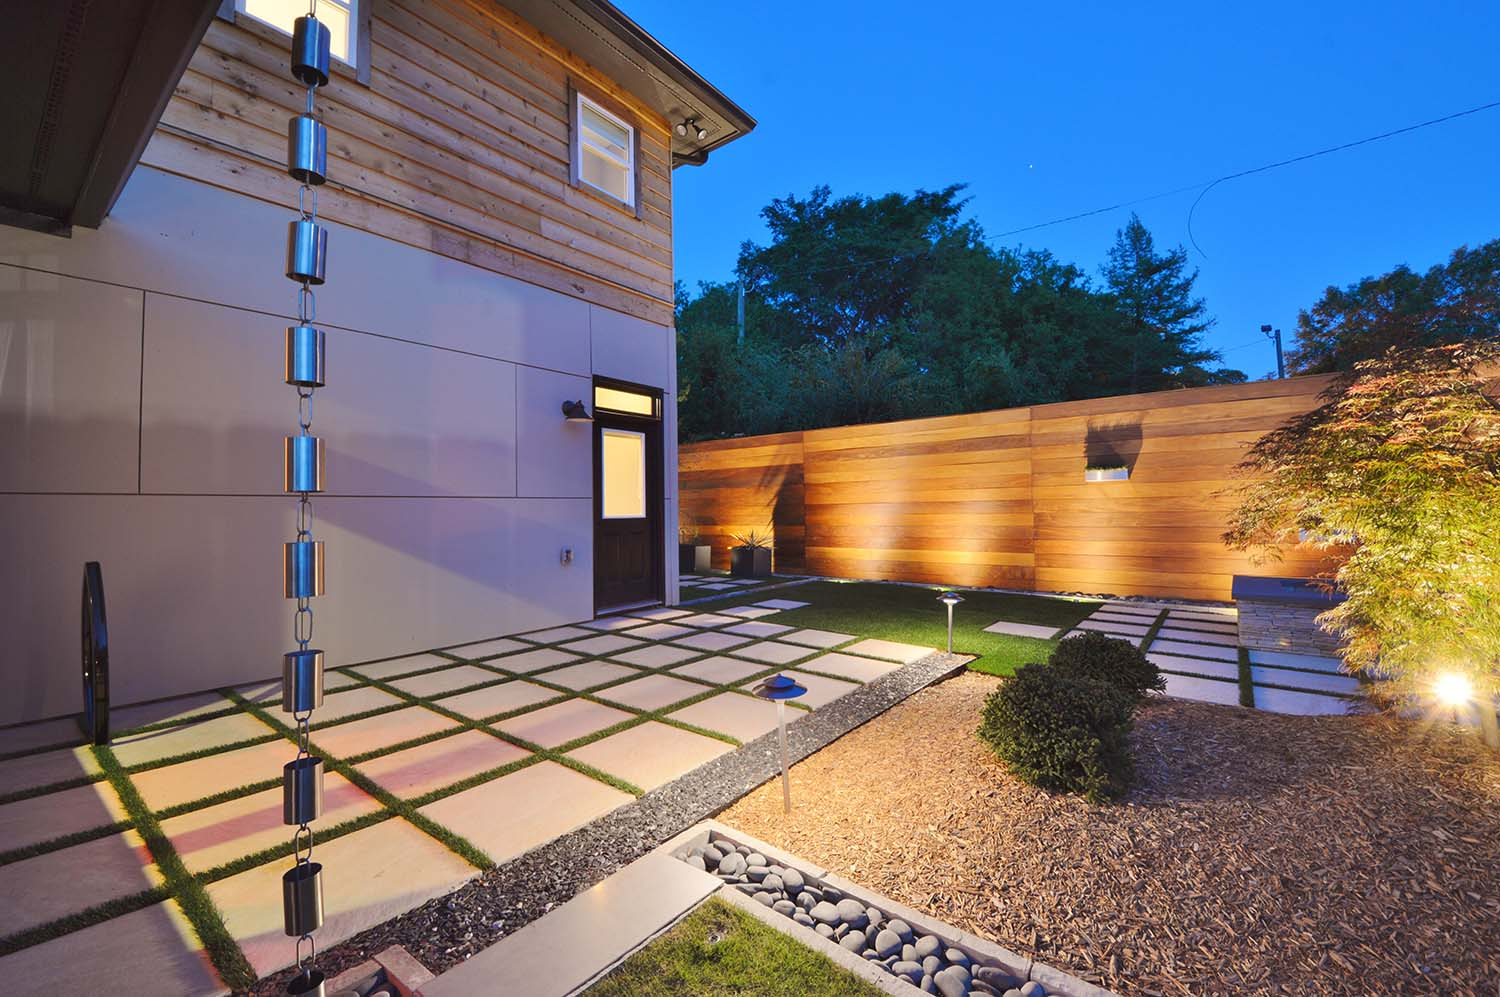 Modern Architecture: Sustainable Landscape Design Compliments Modern Architecture